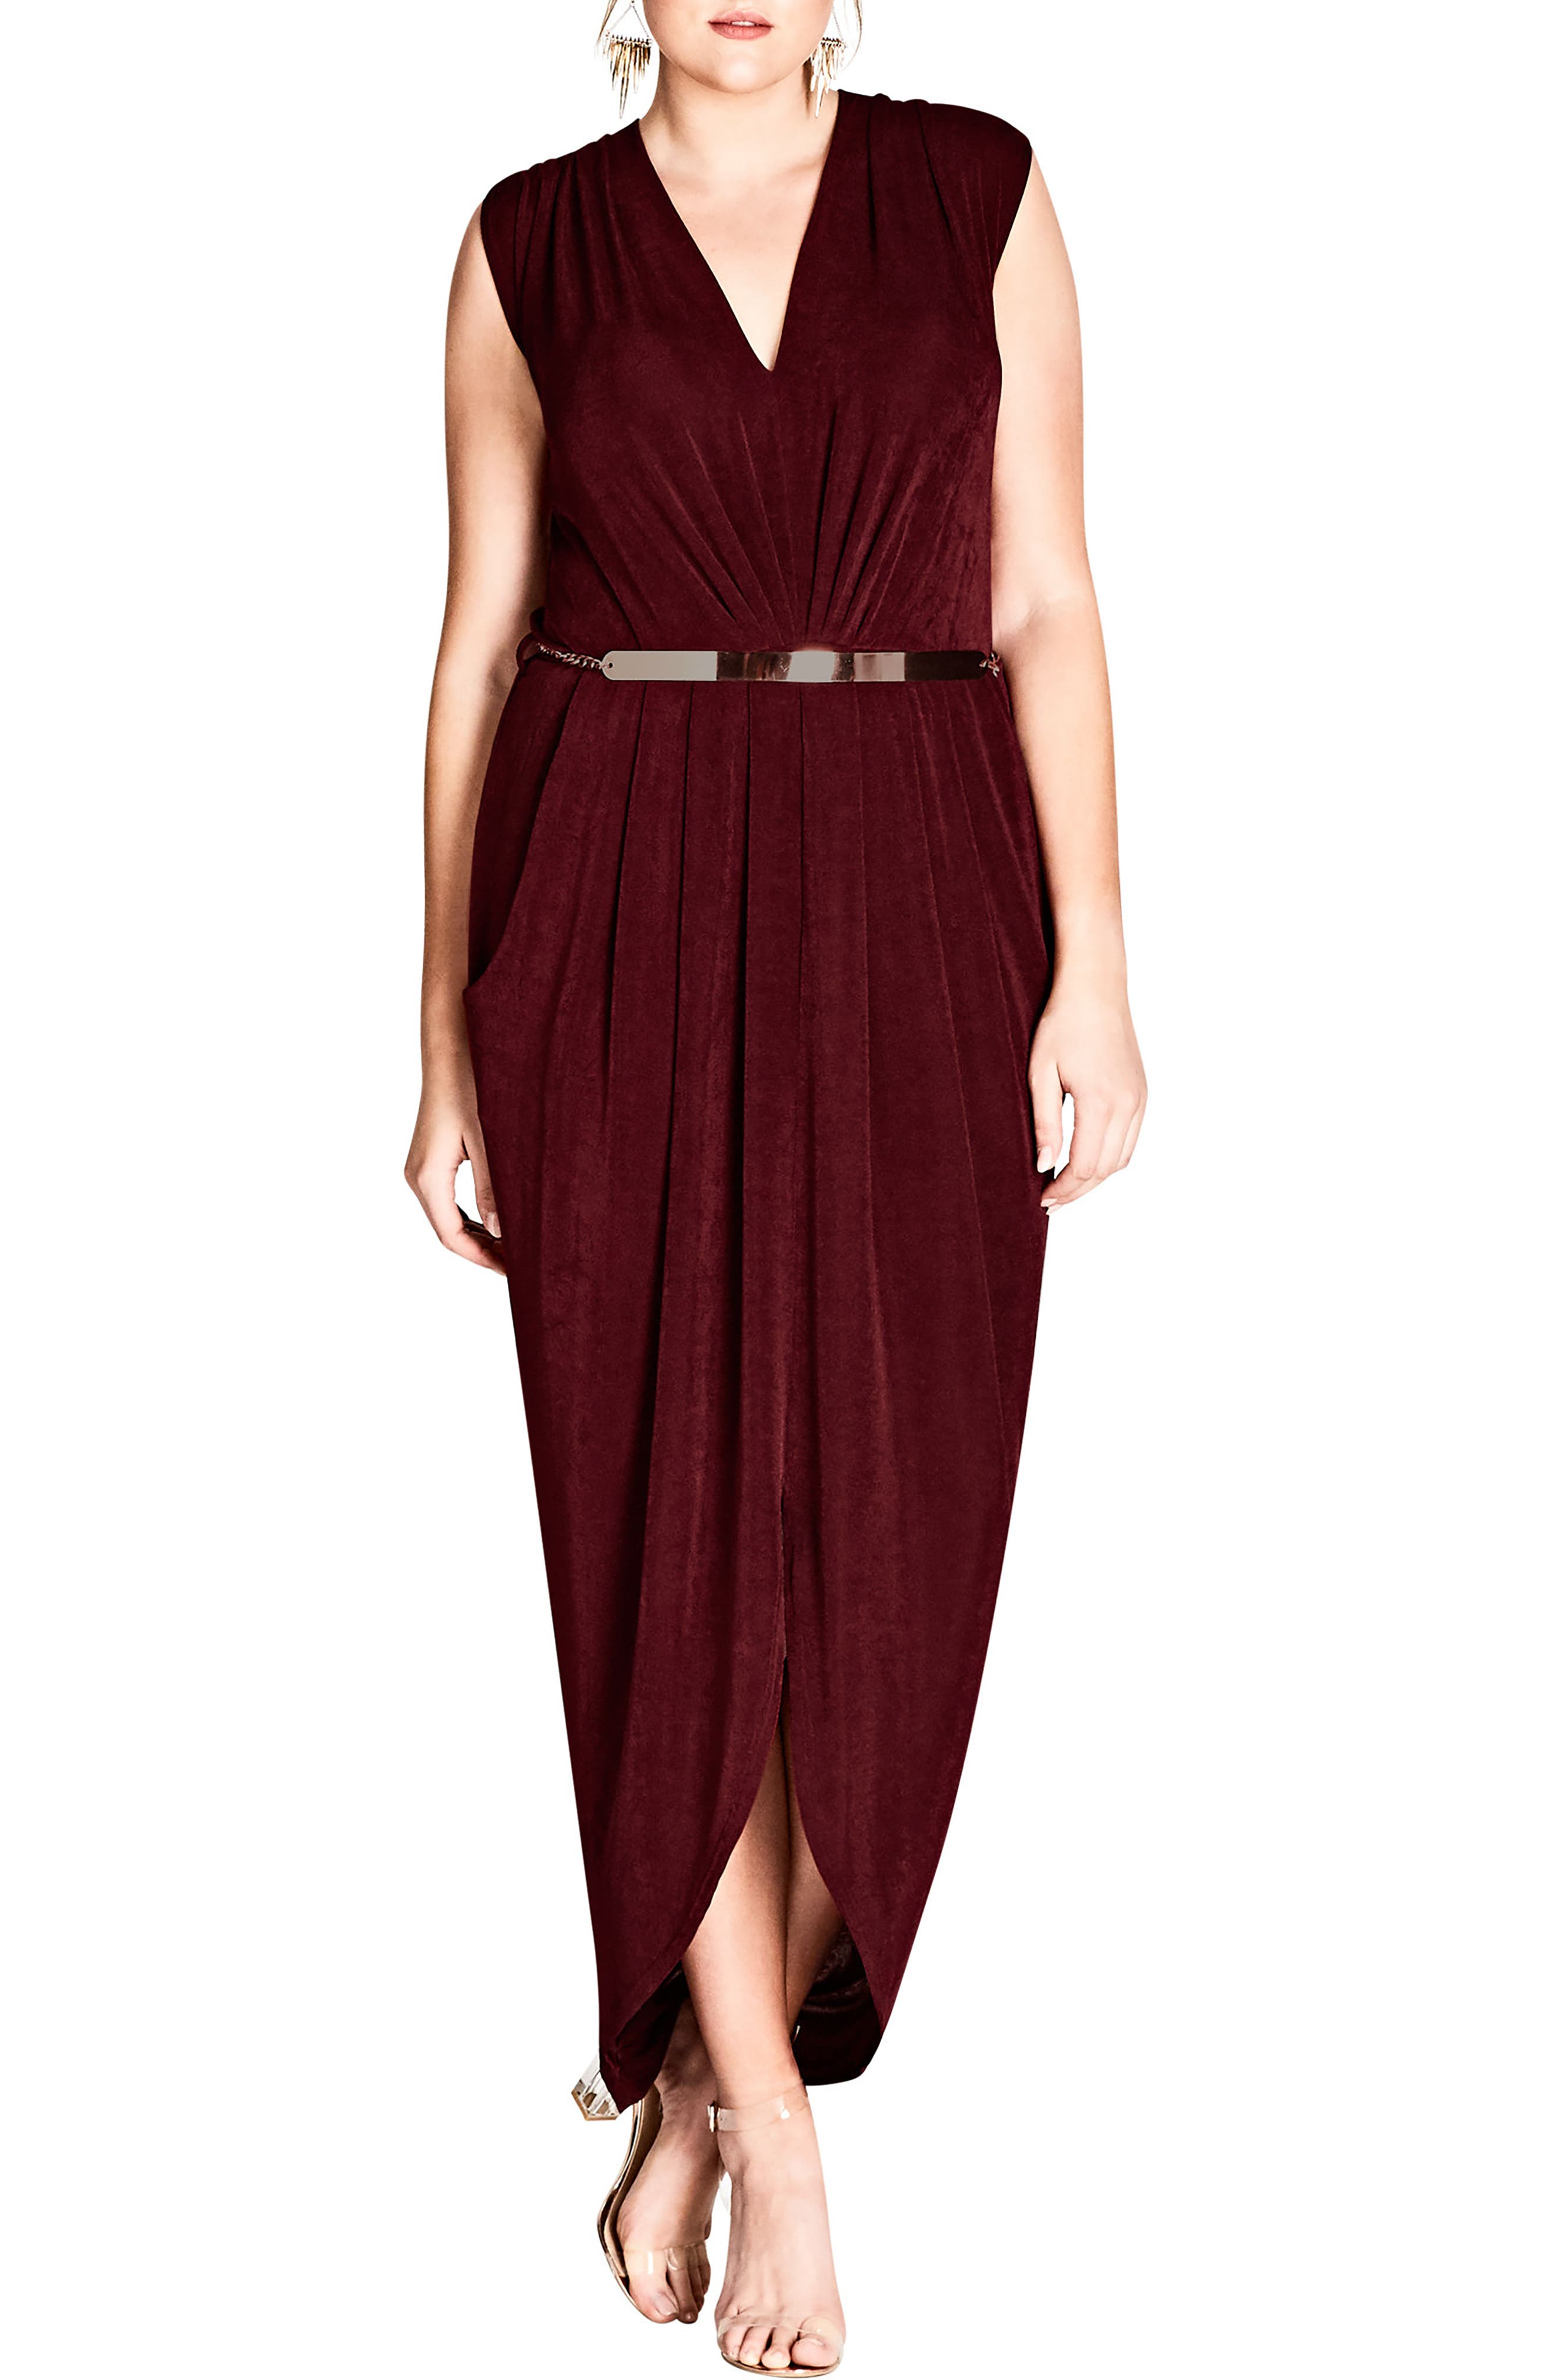 Alternate Image 1 Selected - City Chic Sexy Slink Maxi Dress (Plus Size)